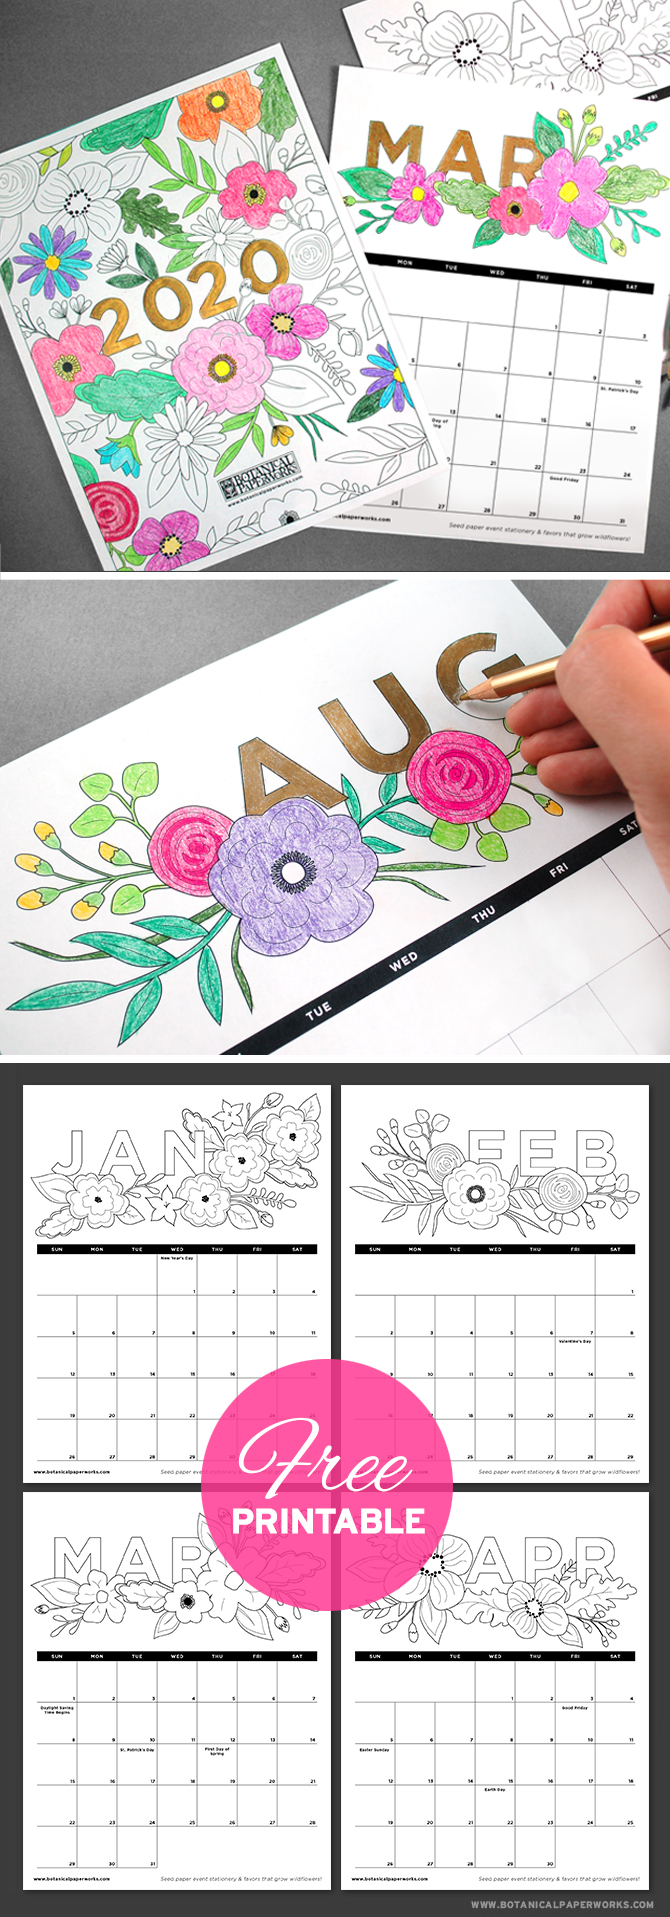 Satisfy the child within and plan for 2020 with this fun Free Printable Coloring Book Calendar! It's filled will floral illustrations that you can color in.